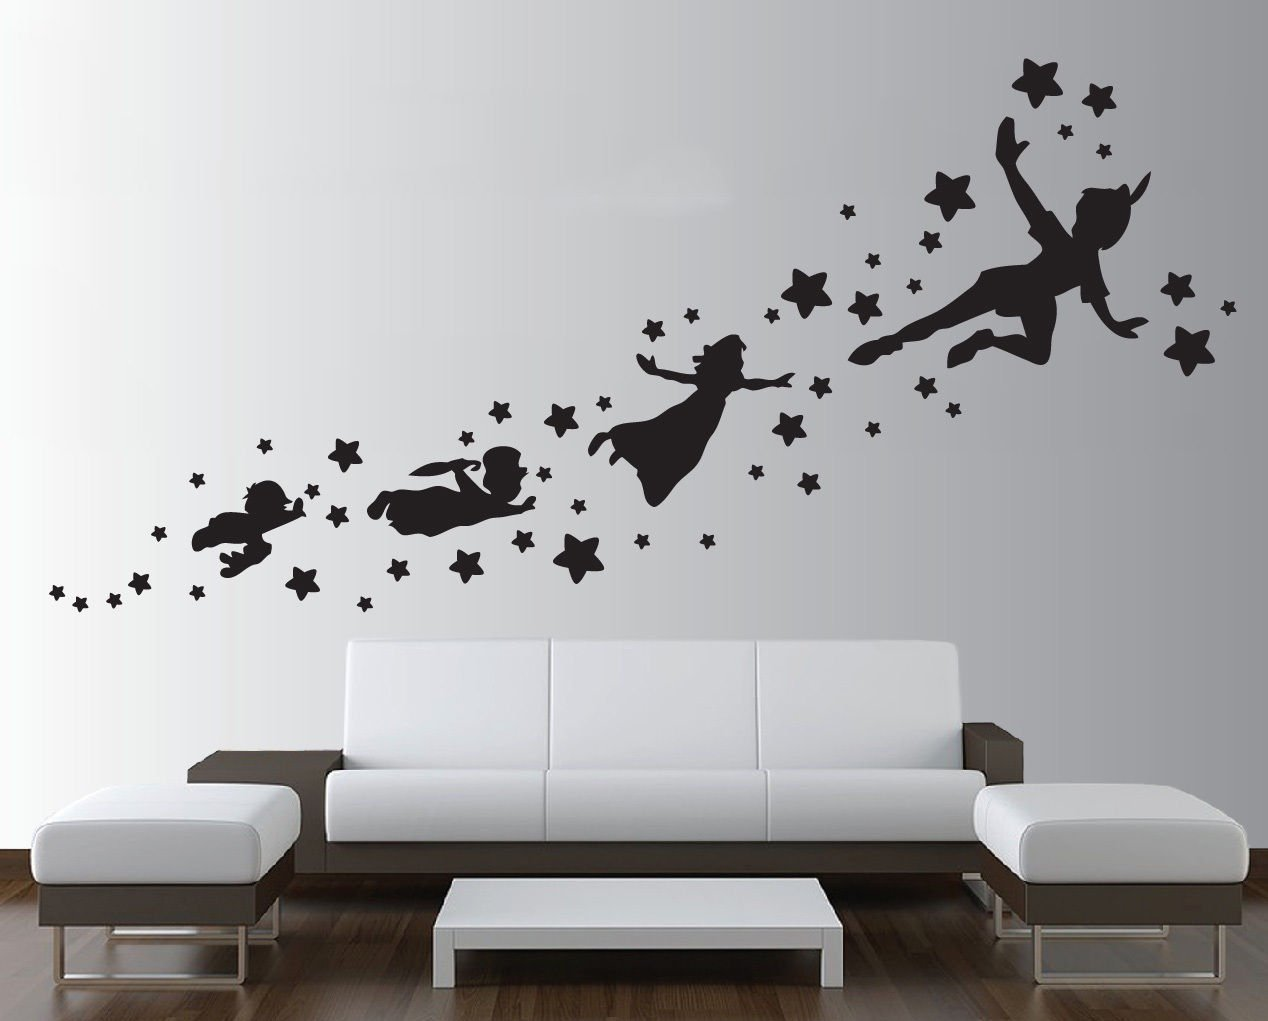 Peter Pan Shadow Wall Decal Removable Vinyl Sticker Mural Window Kids  Children Art: Amazon.co.uk: Kitchen U0026 Home